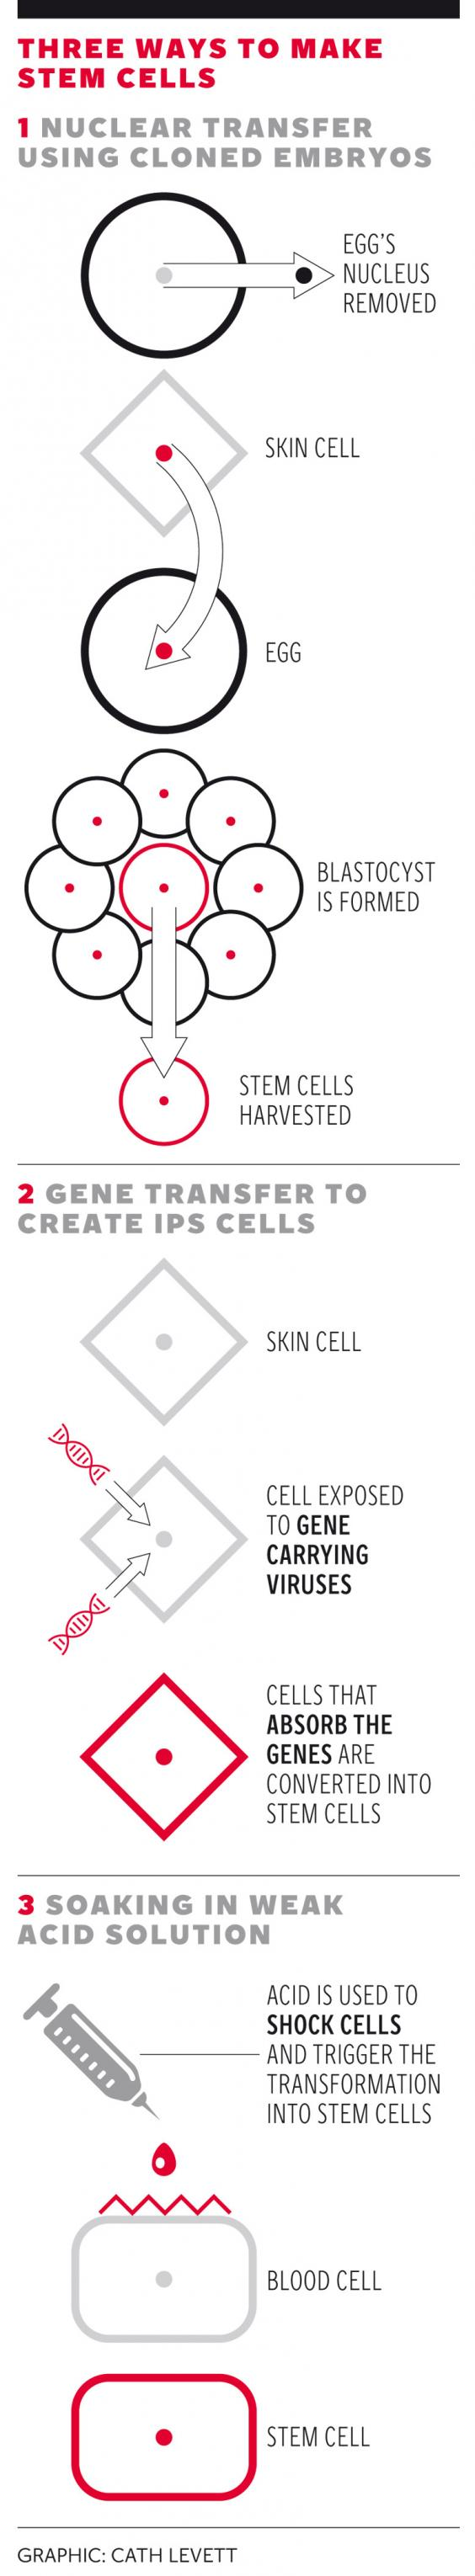 web-stem-cell-graphic.jpg